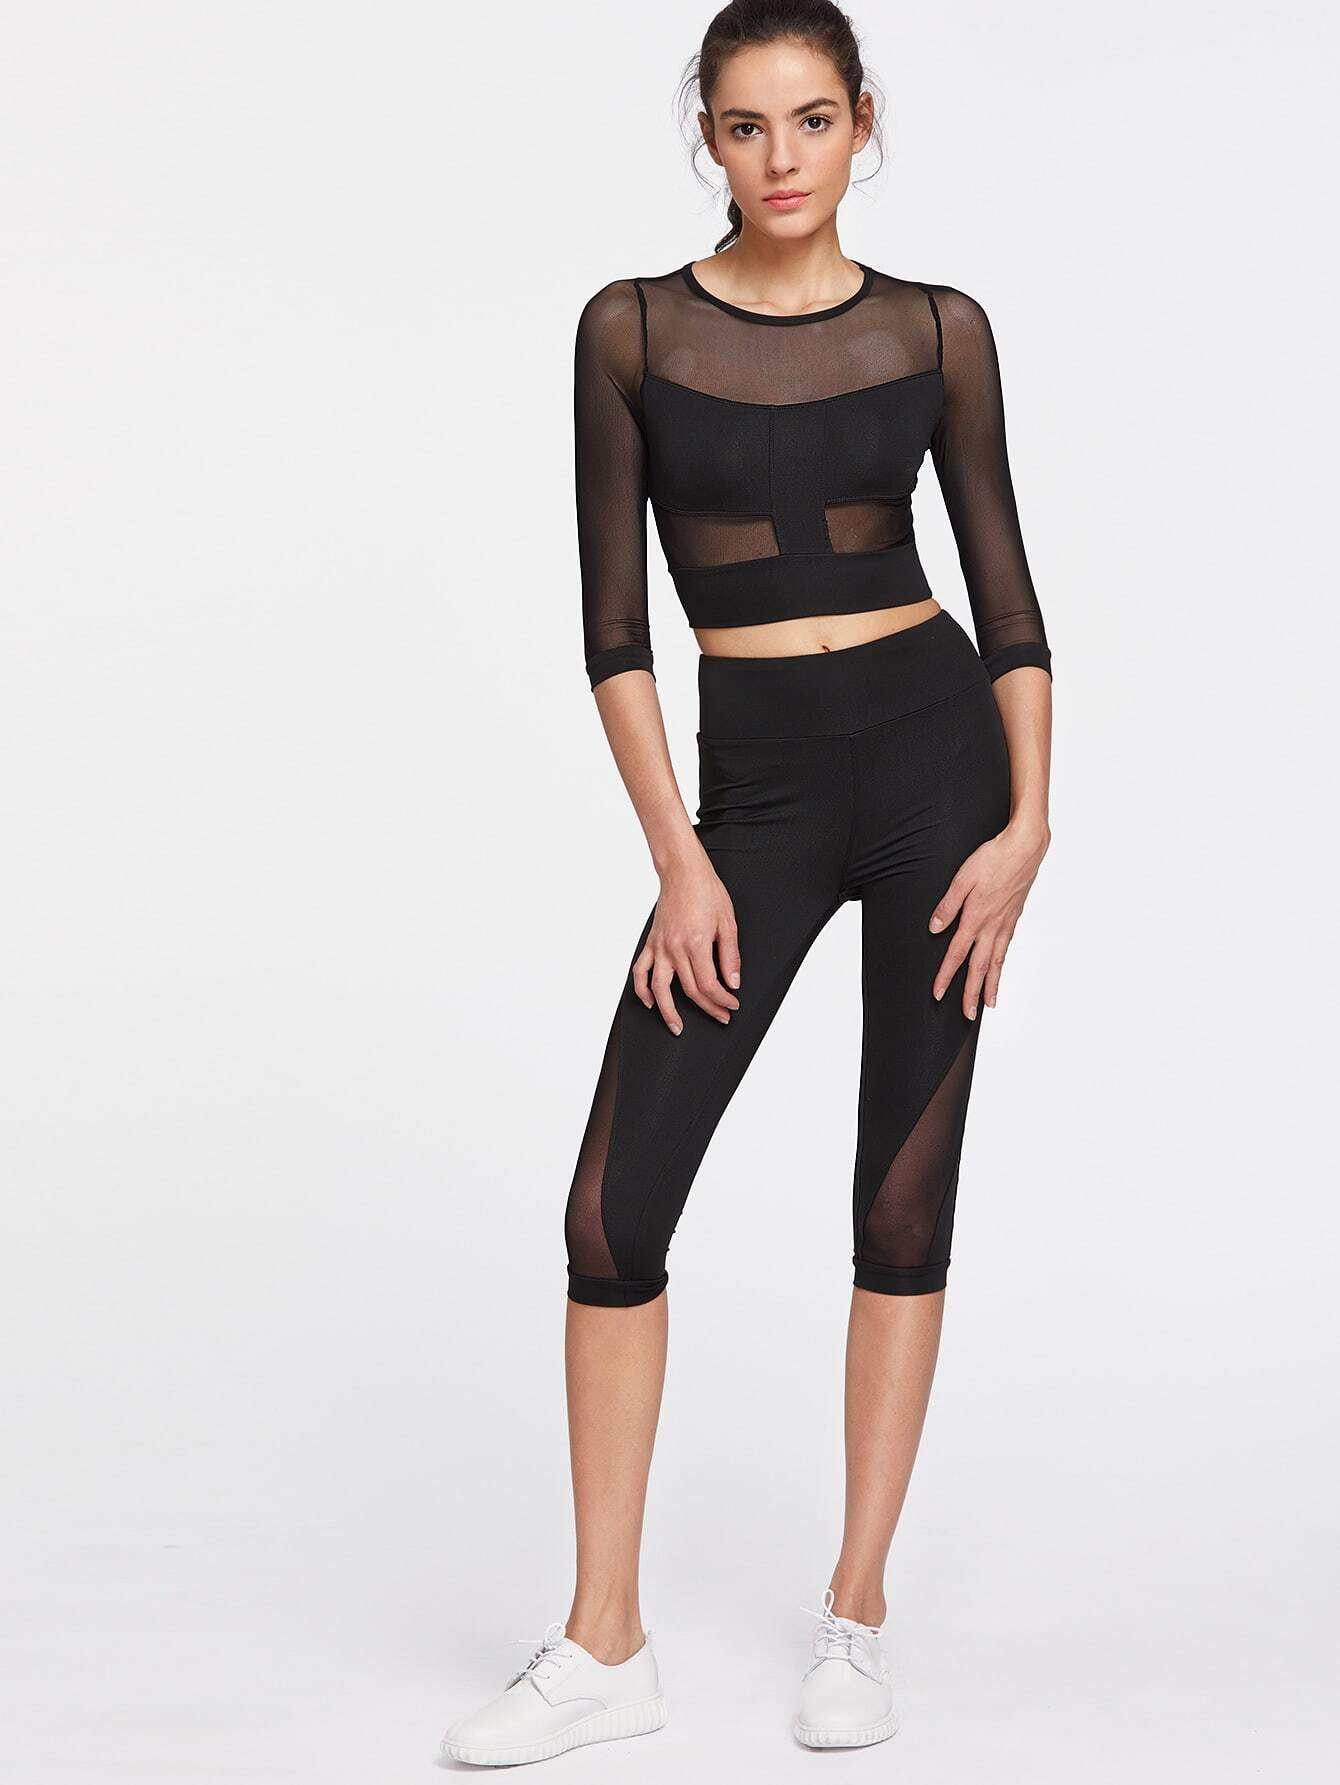 Active Mesh Paneled Top With Capri Leggings twopiece170403303